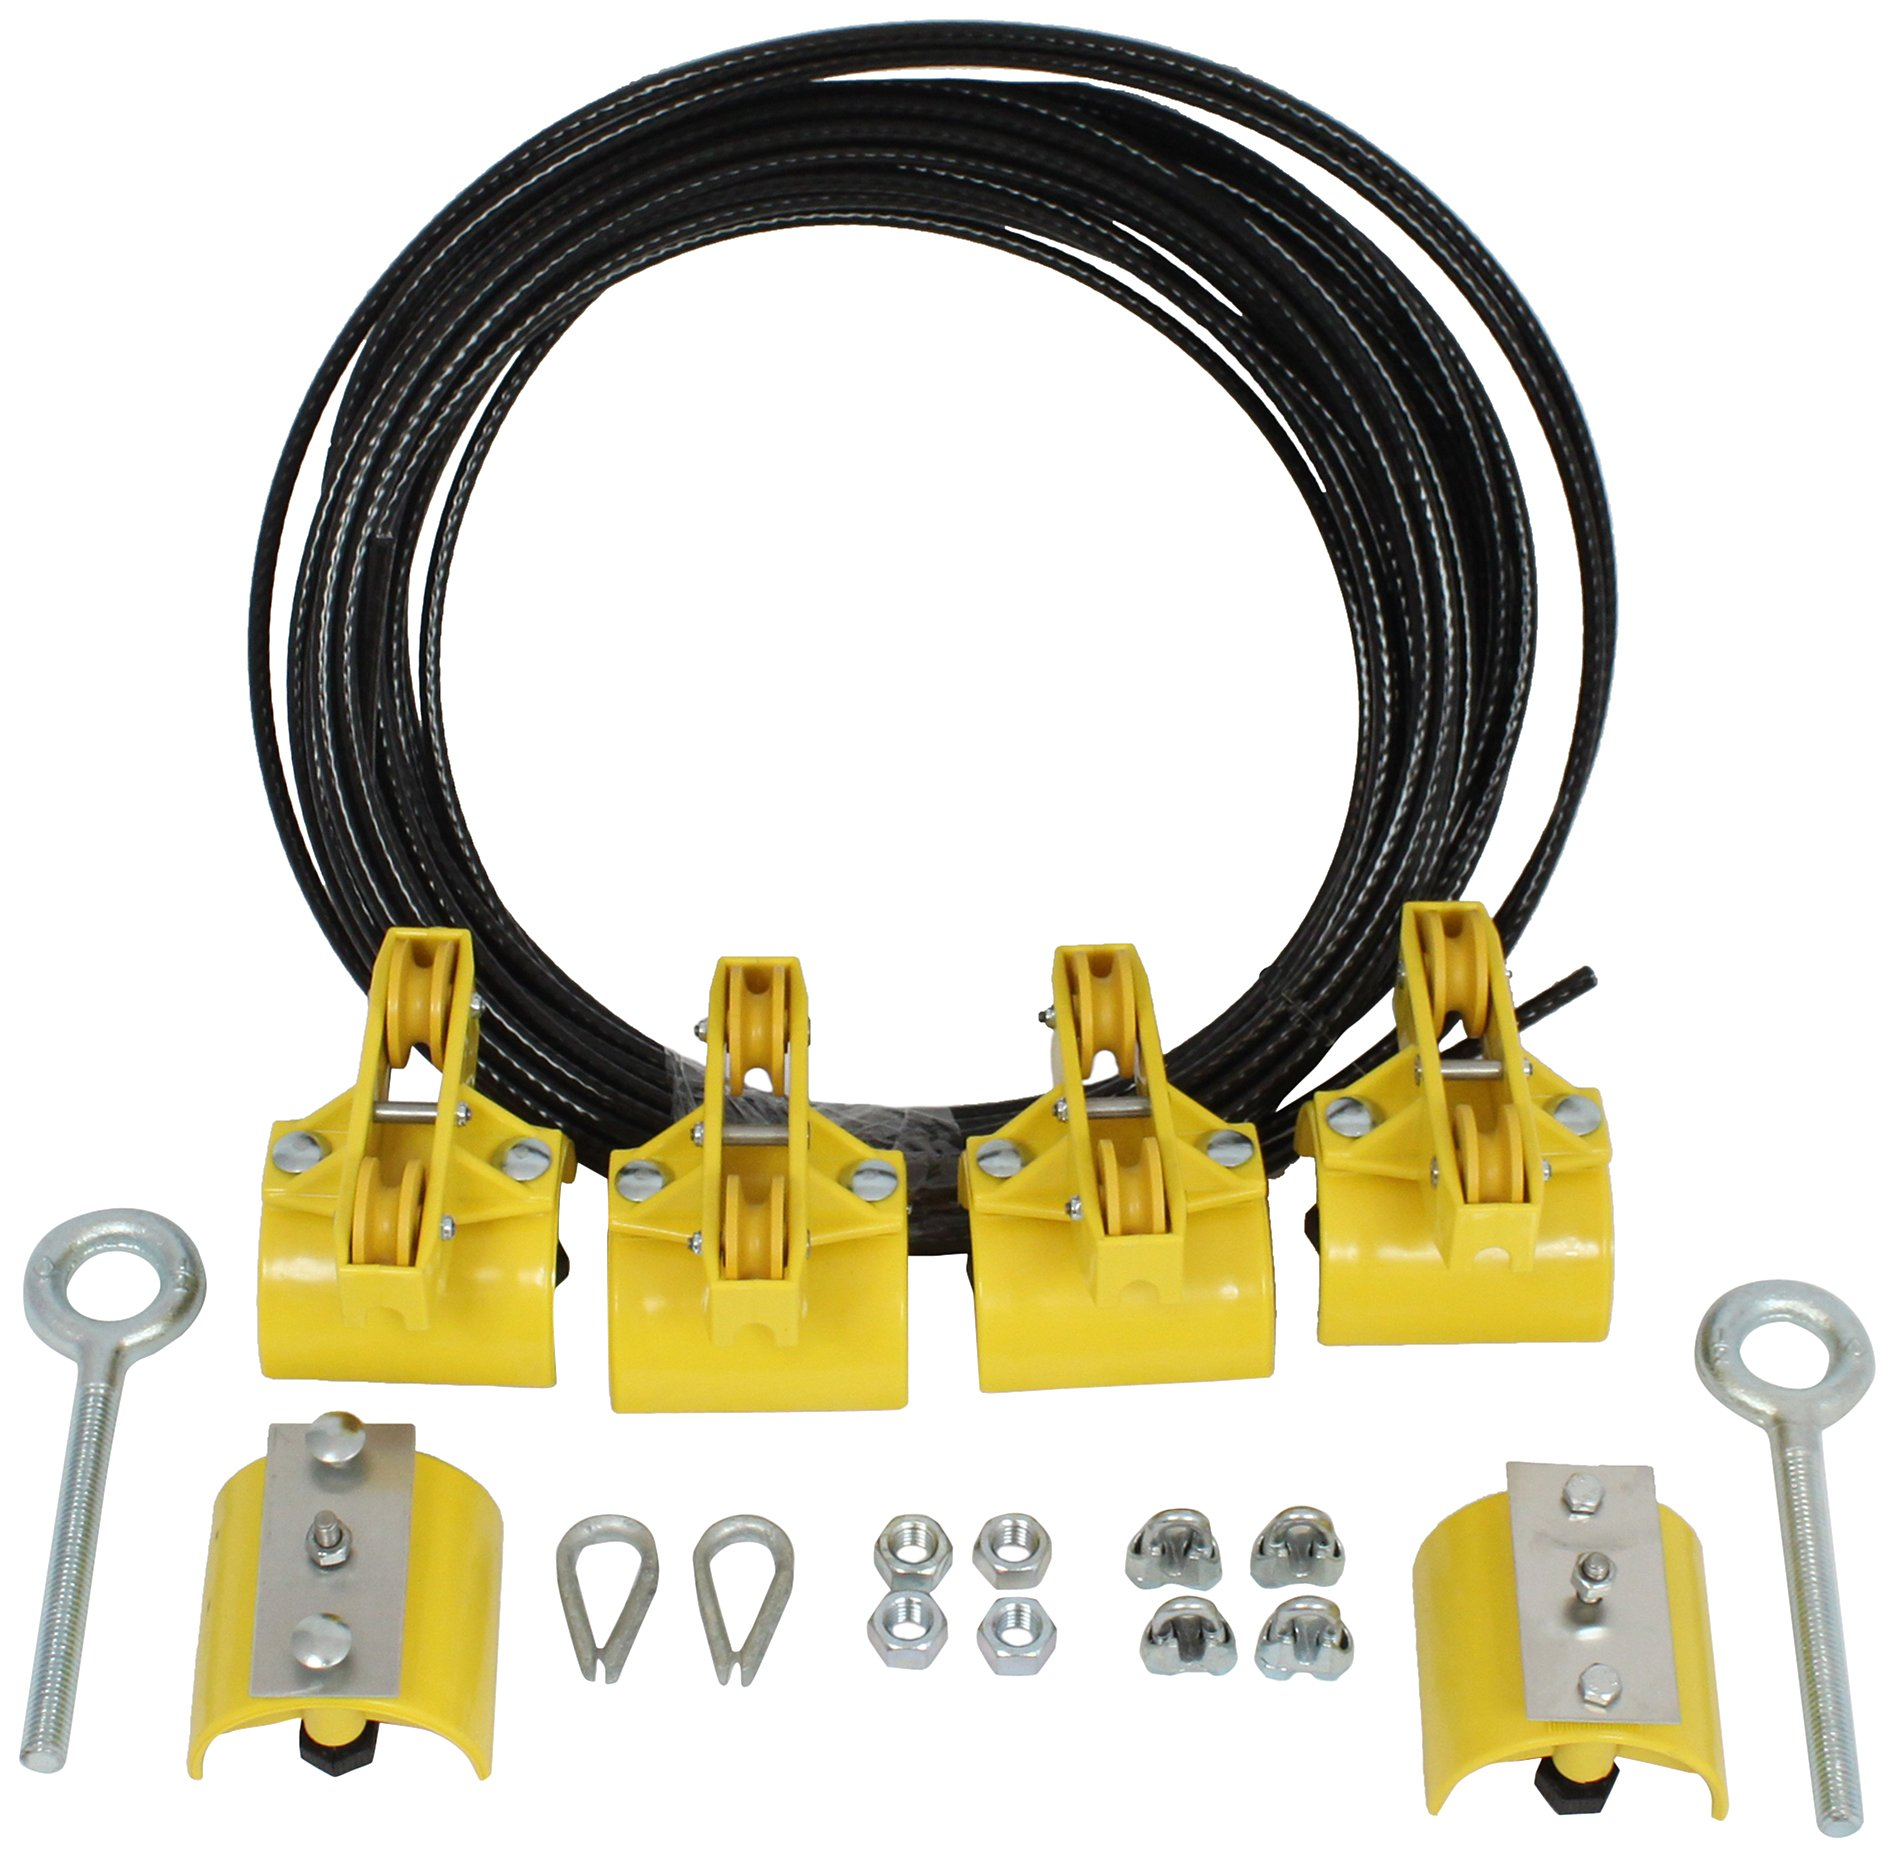 KH Industries FTSW-RL-KIT60 Festoon Stretch Wire Kit with 60' Length for Large Round Cable Systems